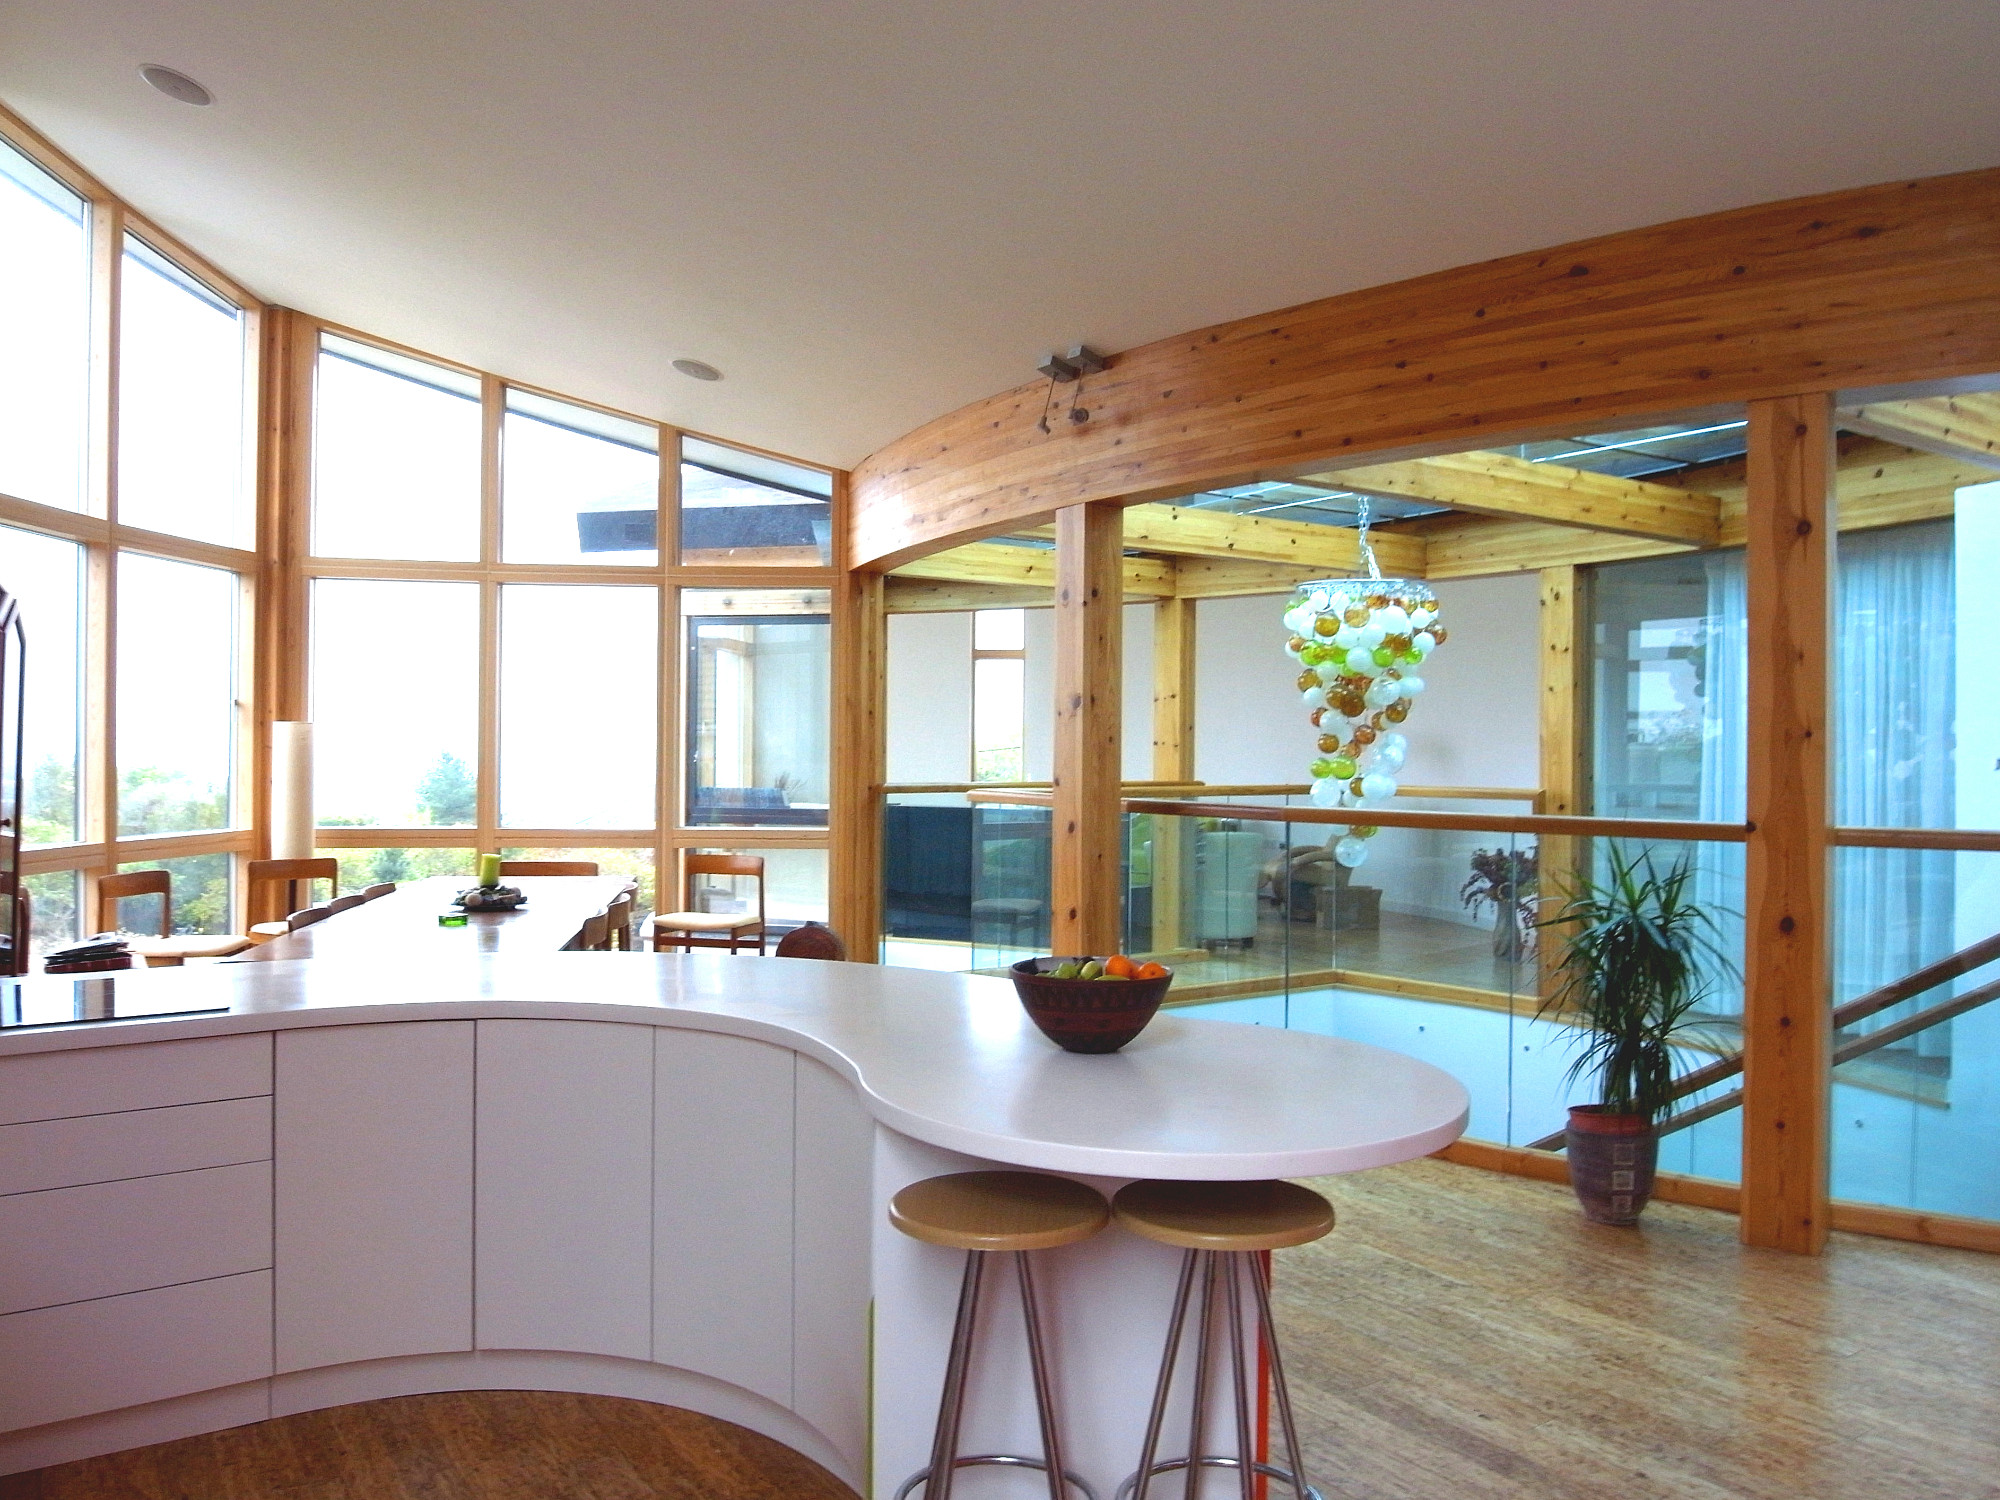 Curved kitchen overlooking the open space